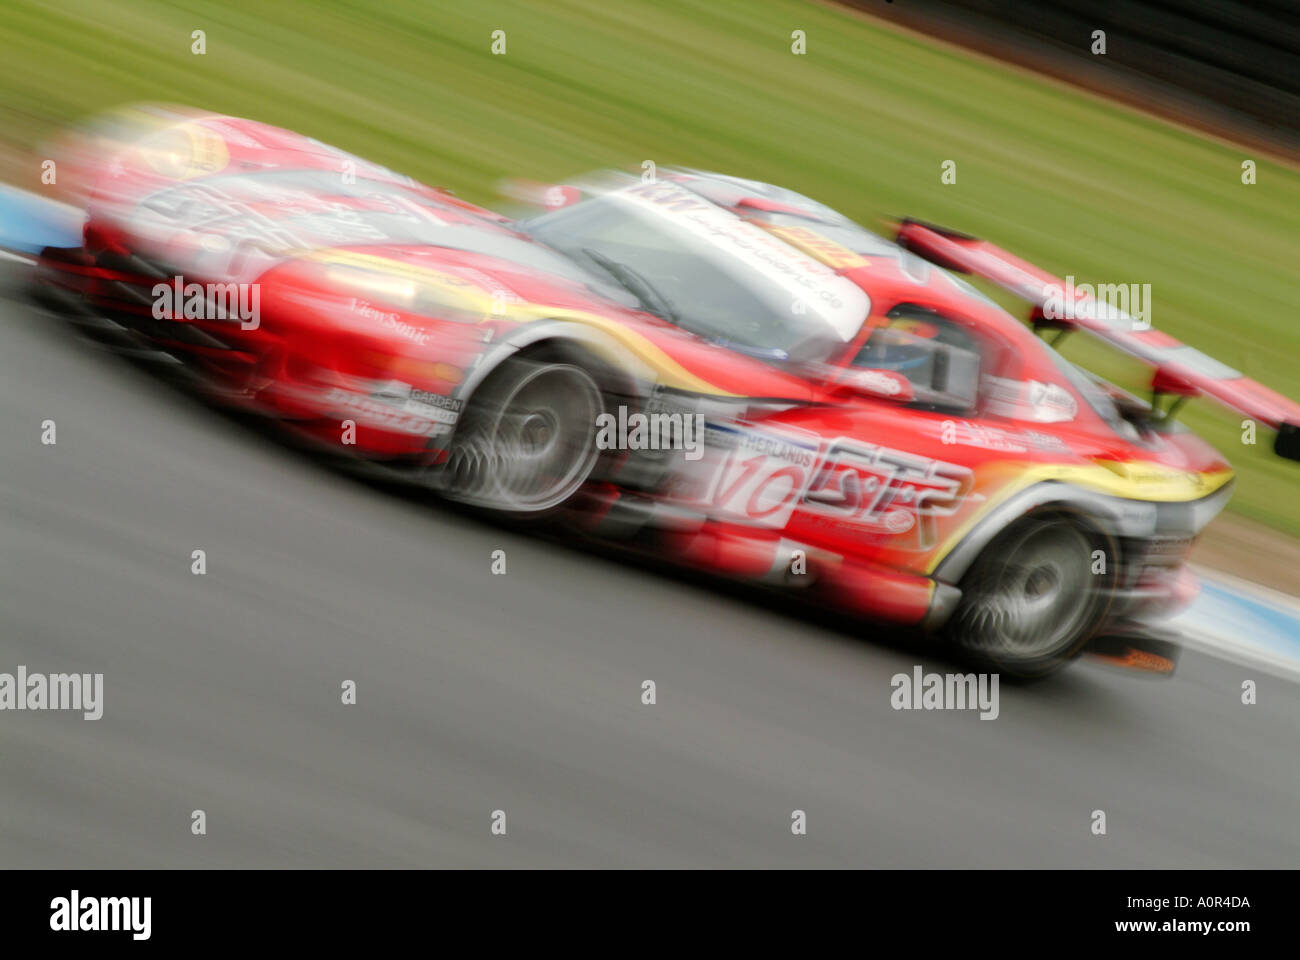 dodge viper racing car race motor sport auto risk win lose fast speed power blur motion movement power engine competition - Stock Image